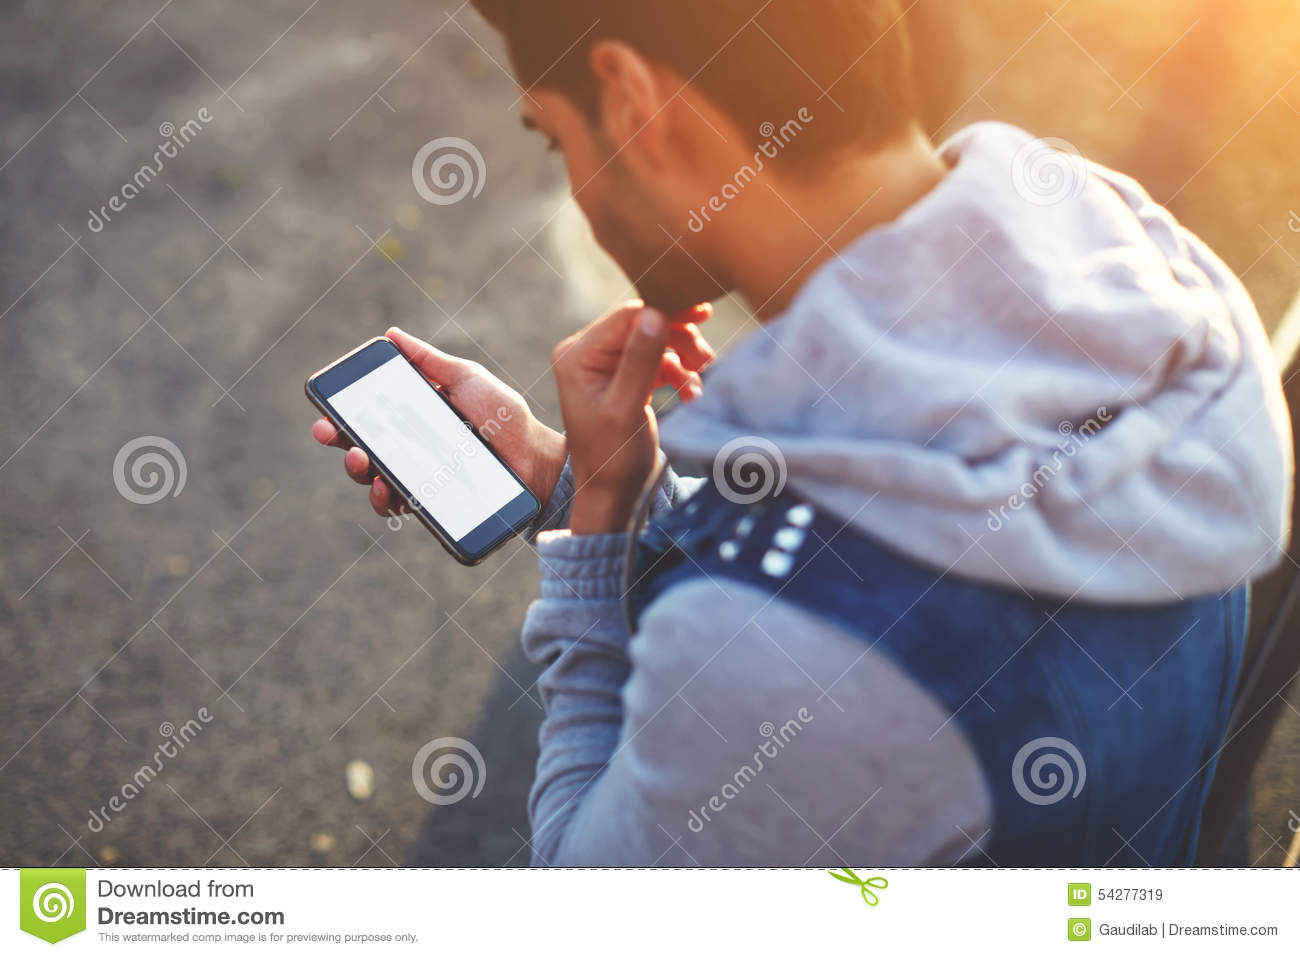 Handsome young man using smart phone while standing outdoors at sunny evening